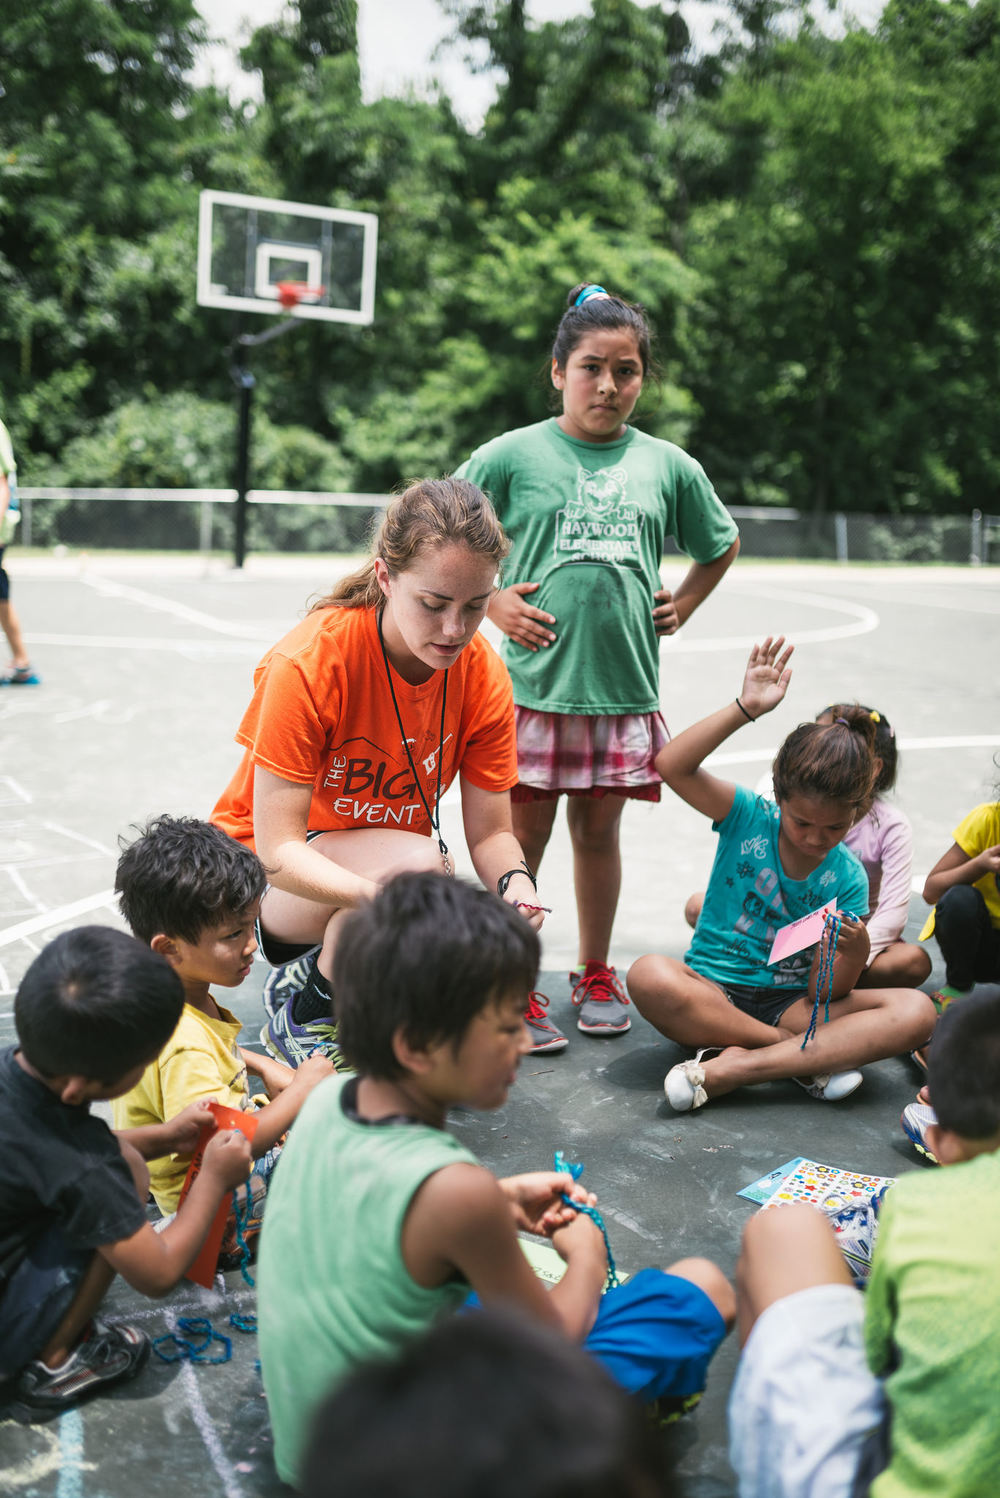 In cooperation with G.O.D.'s Camp Skillz program, SLAM youth will provide day camp activities to hundreds of children in low-income neighborhoods. Our Camp Skillz: Antioch site is particularly focused on children of immigrants and refugees.